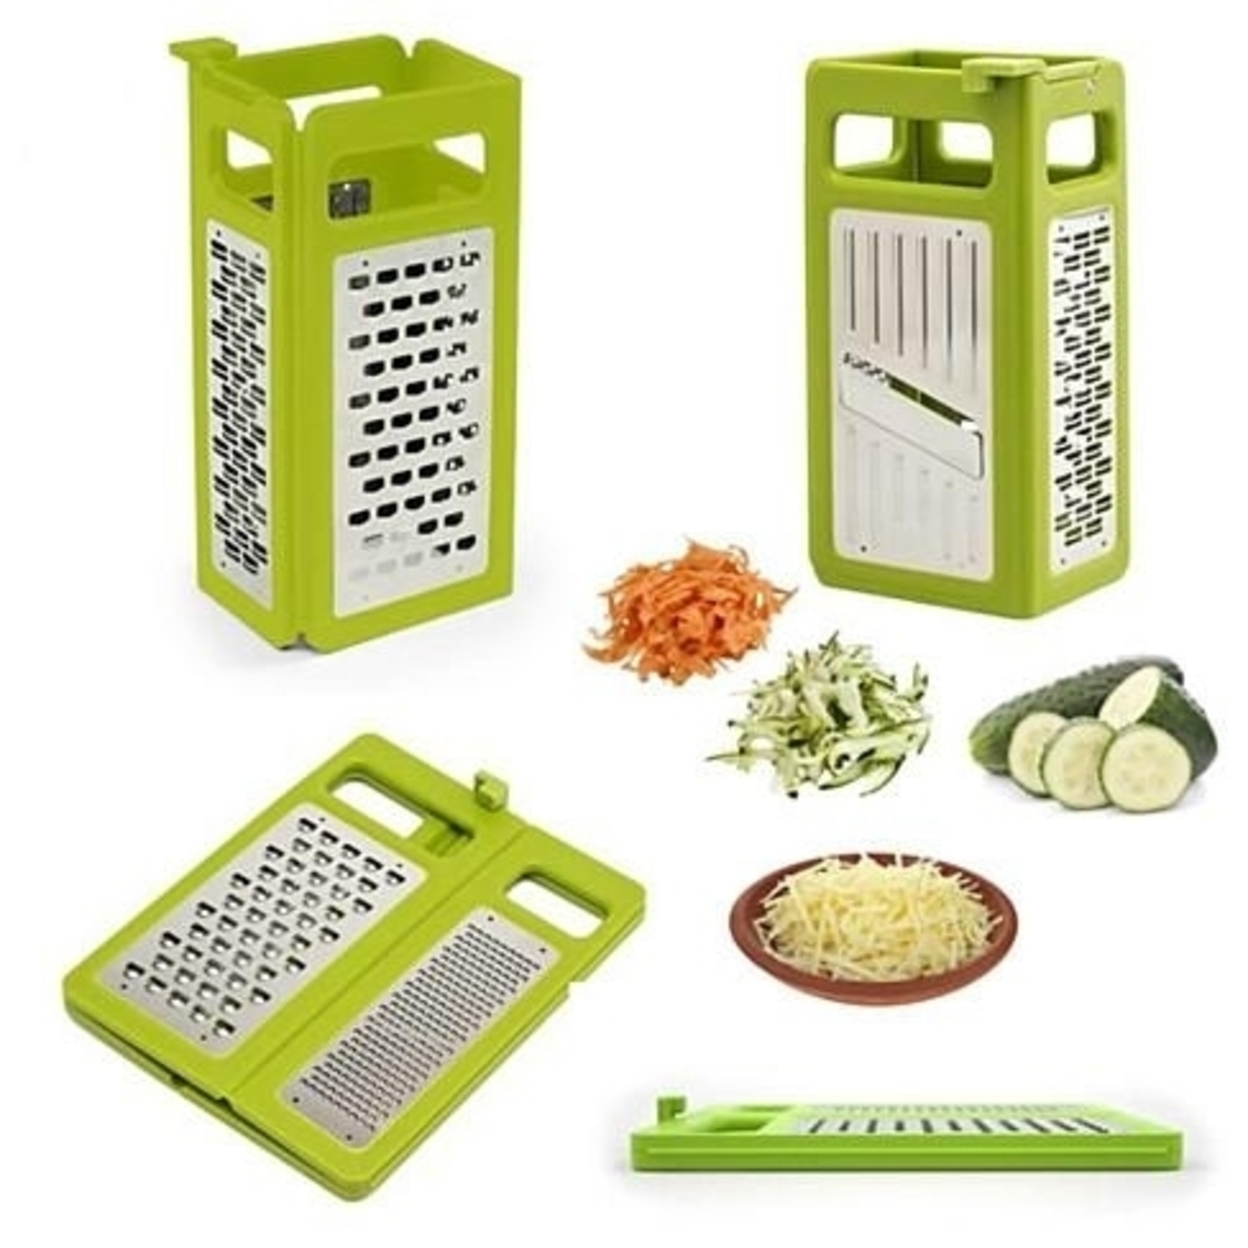 Space Saver 4 In 1 Foldable Slicer And Grater